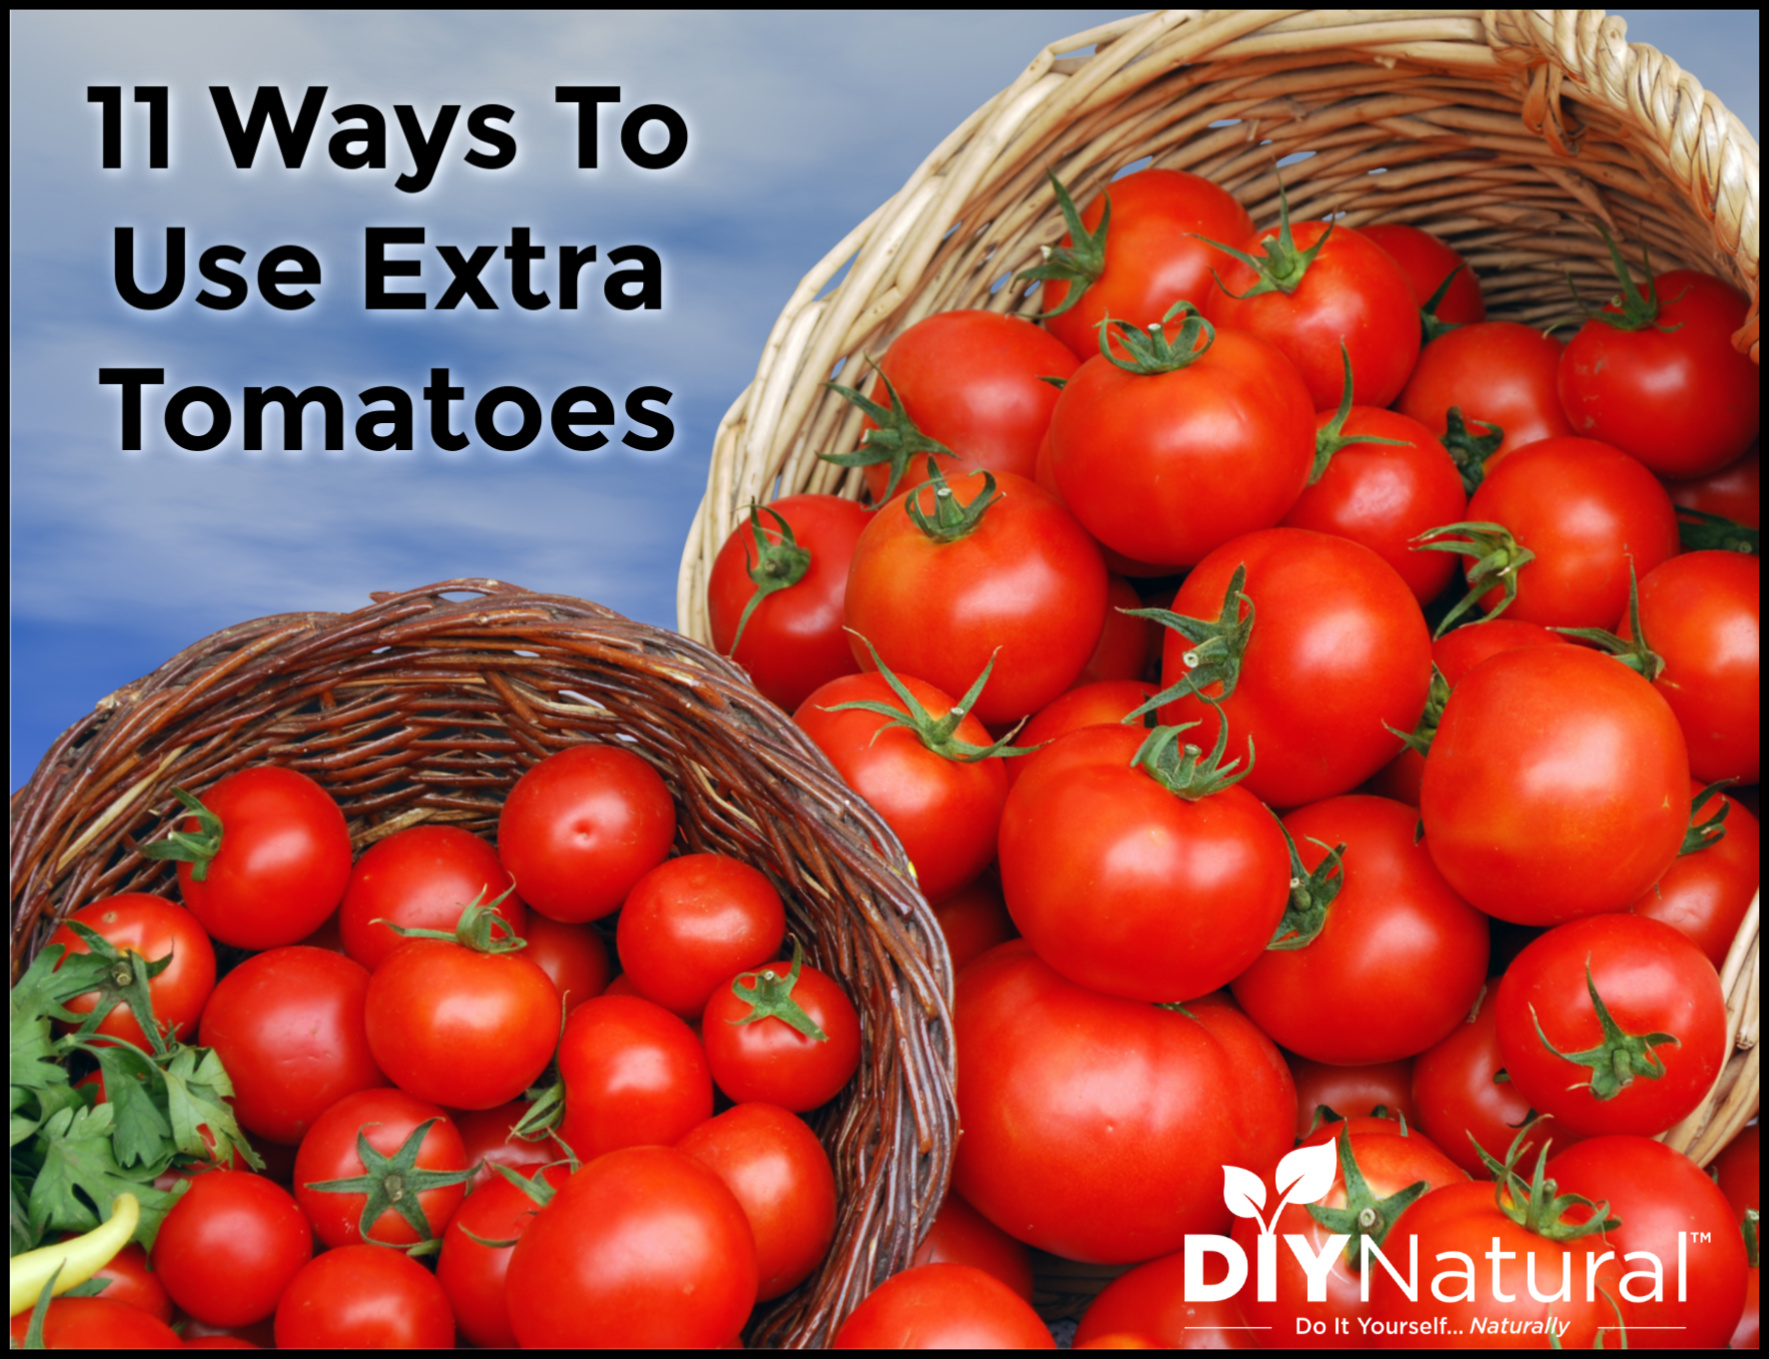 11 Unusual Ways To Use Up Your Tomato Bounty